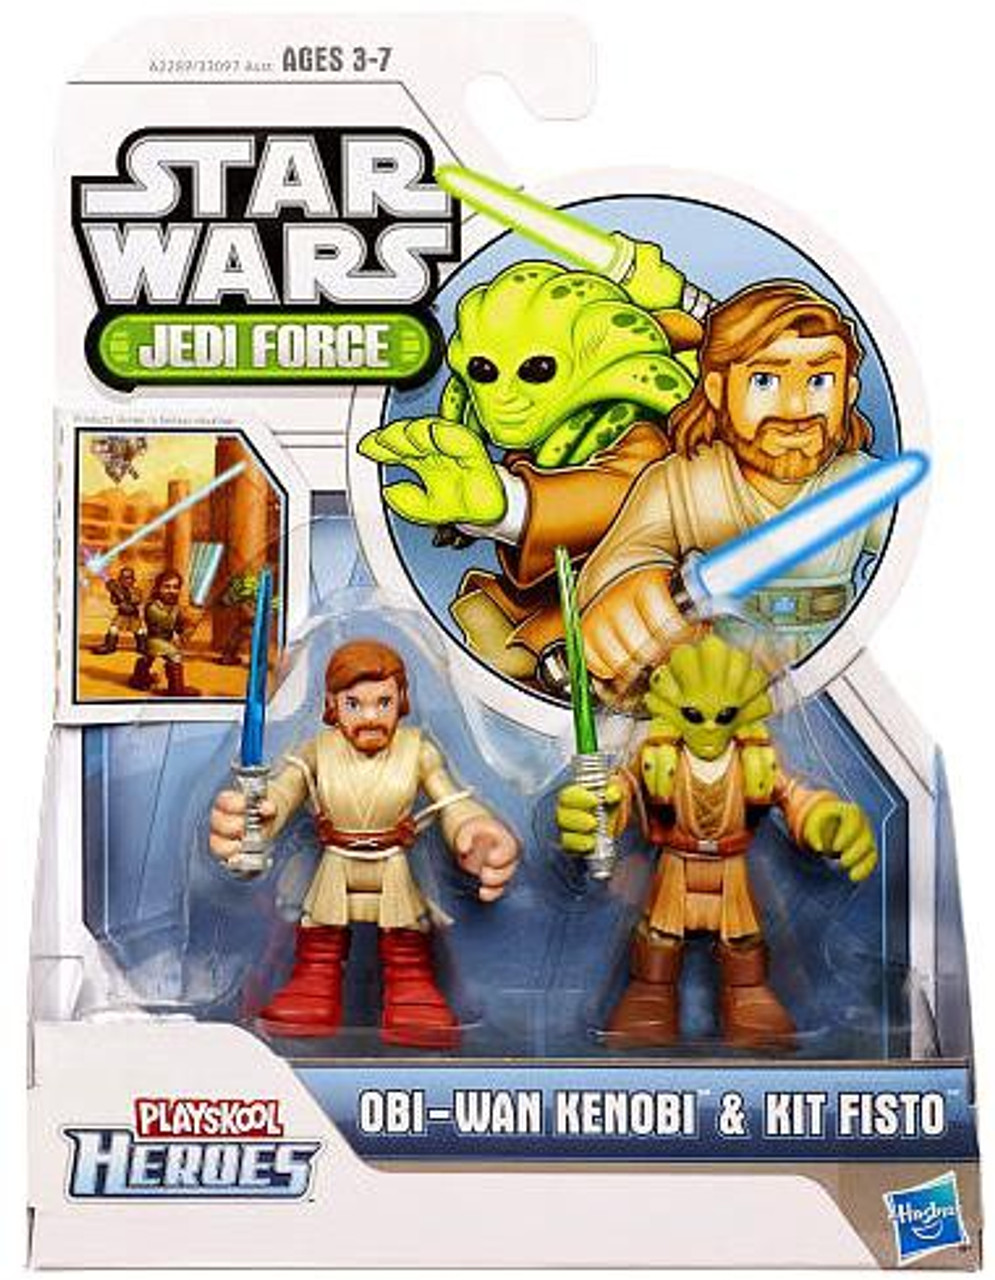 Star Wars Attack of the Clones Jedi Force 2013 Obi-Wan Kenobi & Kit Fisto Action Figure 2-Pack